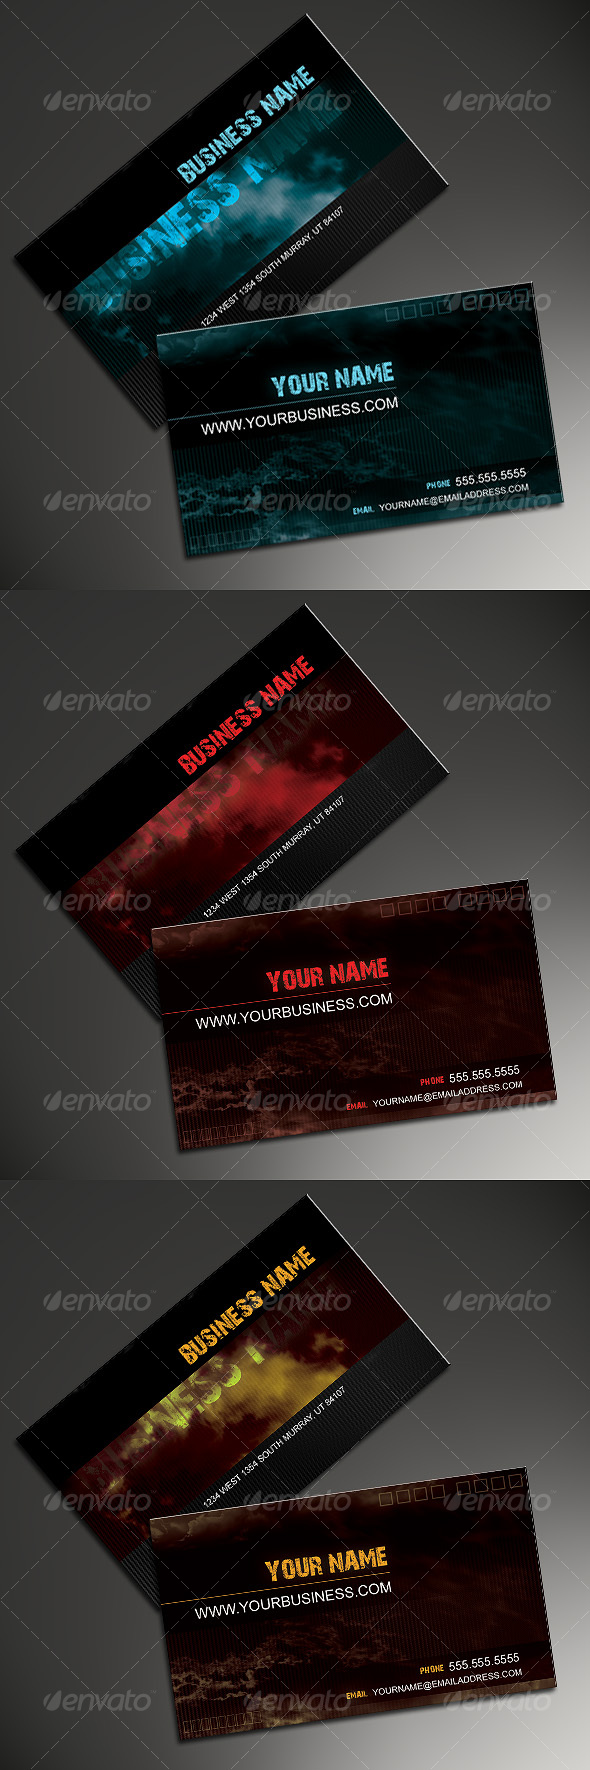 Fall Business Card - Creative Business Cards